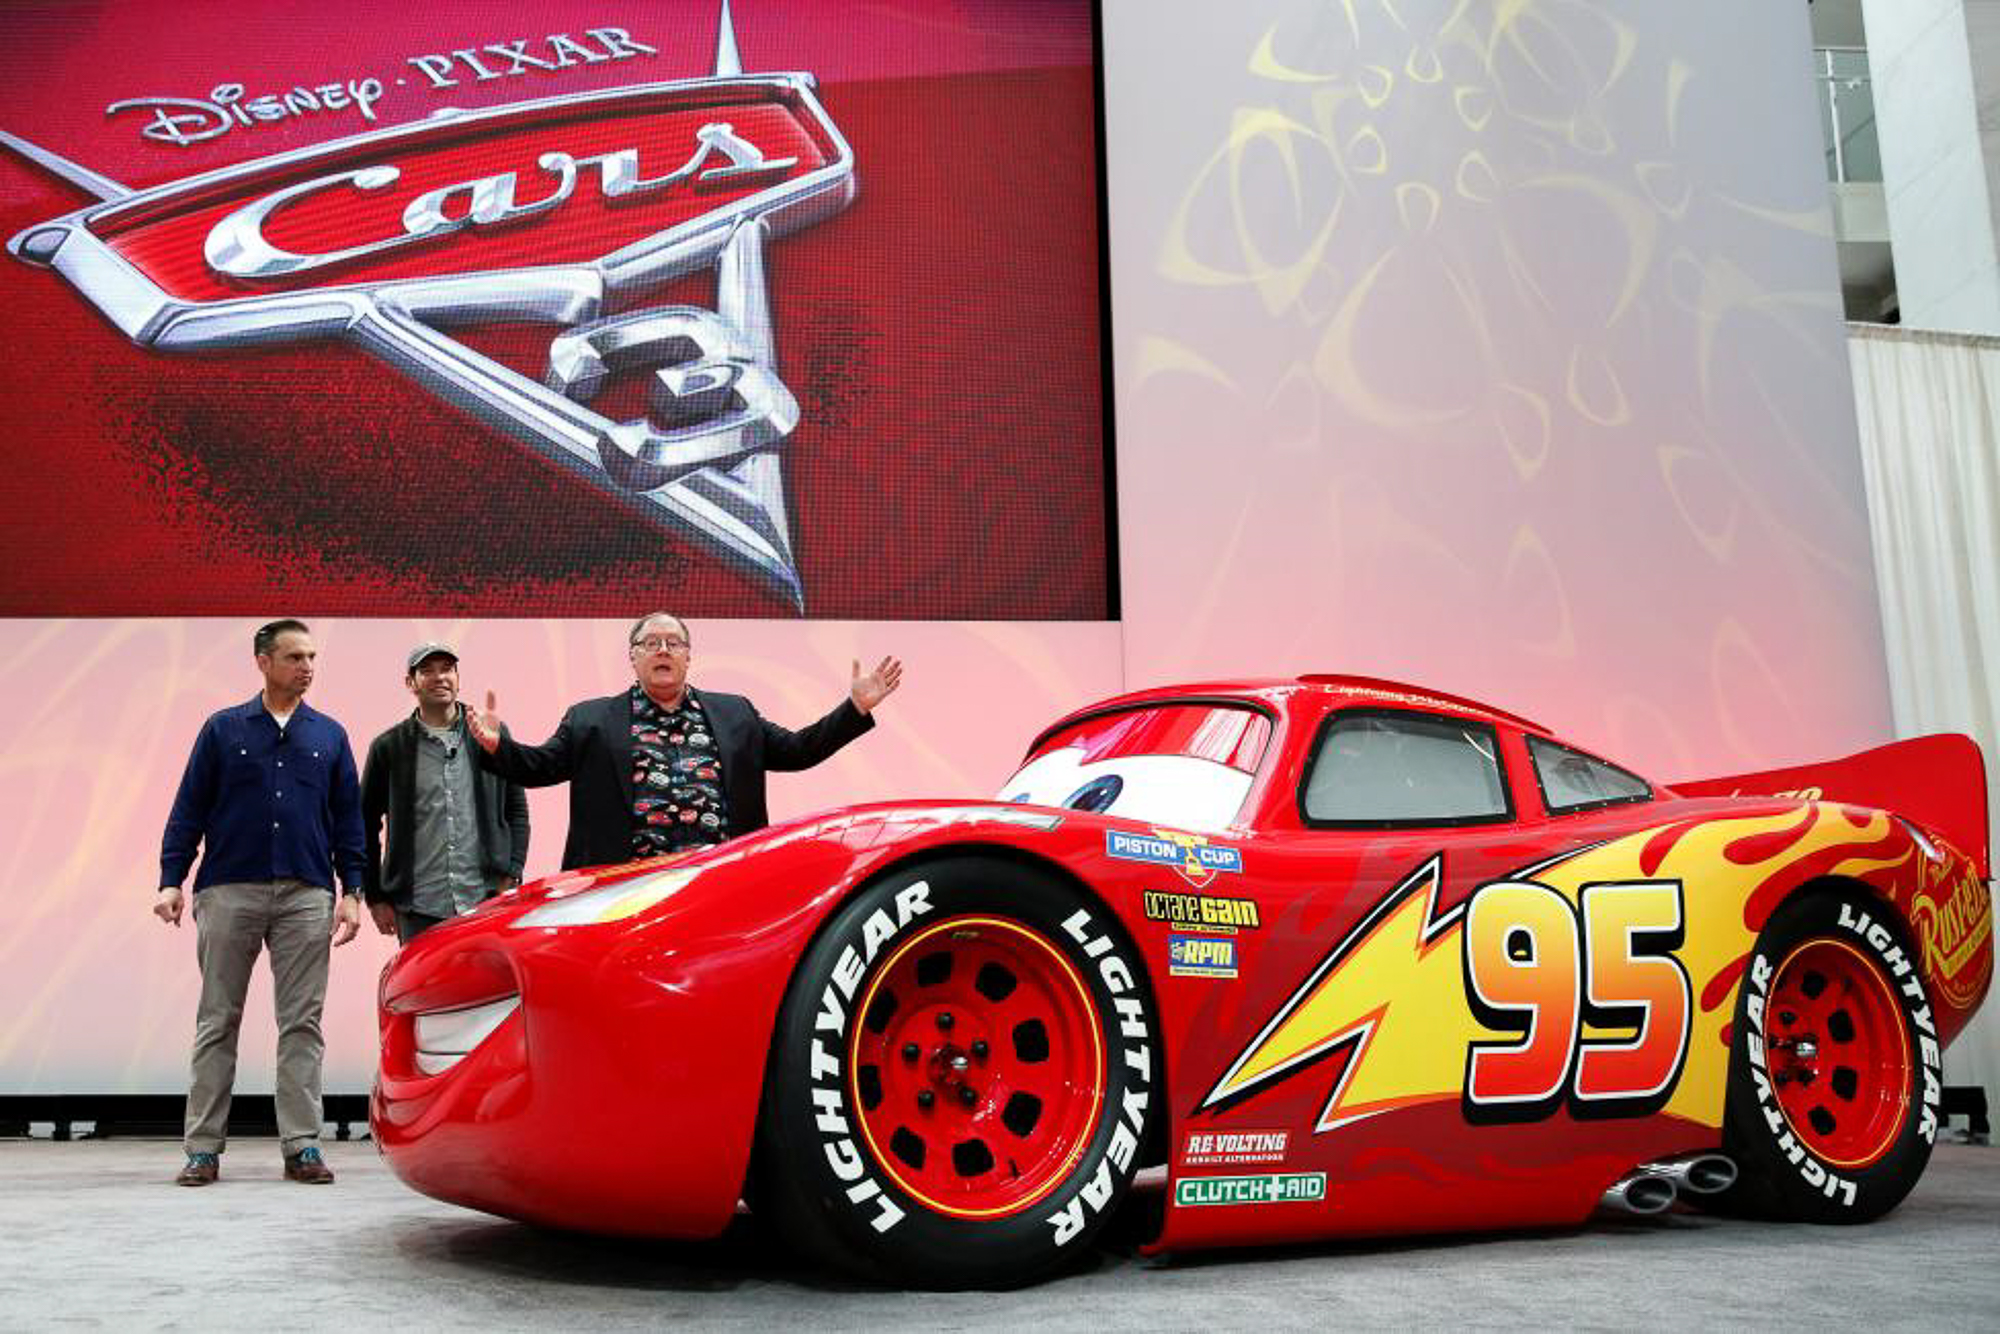 John Lasseter, Chief Creative Officer of Walt Disney and Pixar Animation Studios, introduces Lightning McQueen from Disney Pixar's 'Cars 3'.  PHOTO: REUTERS